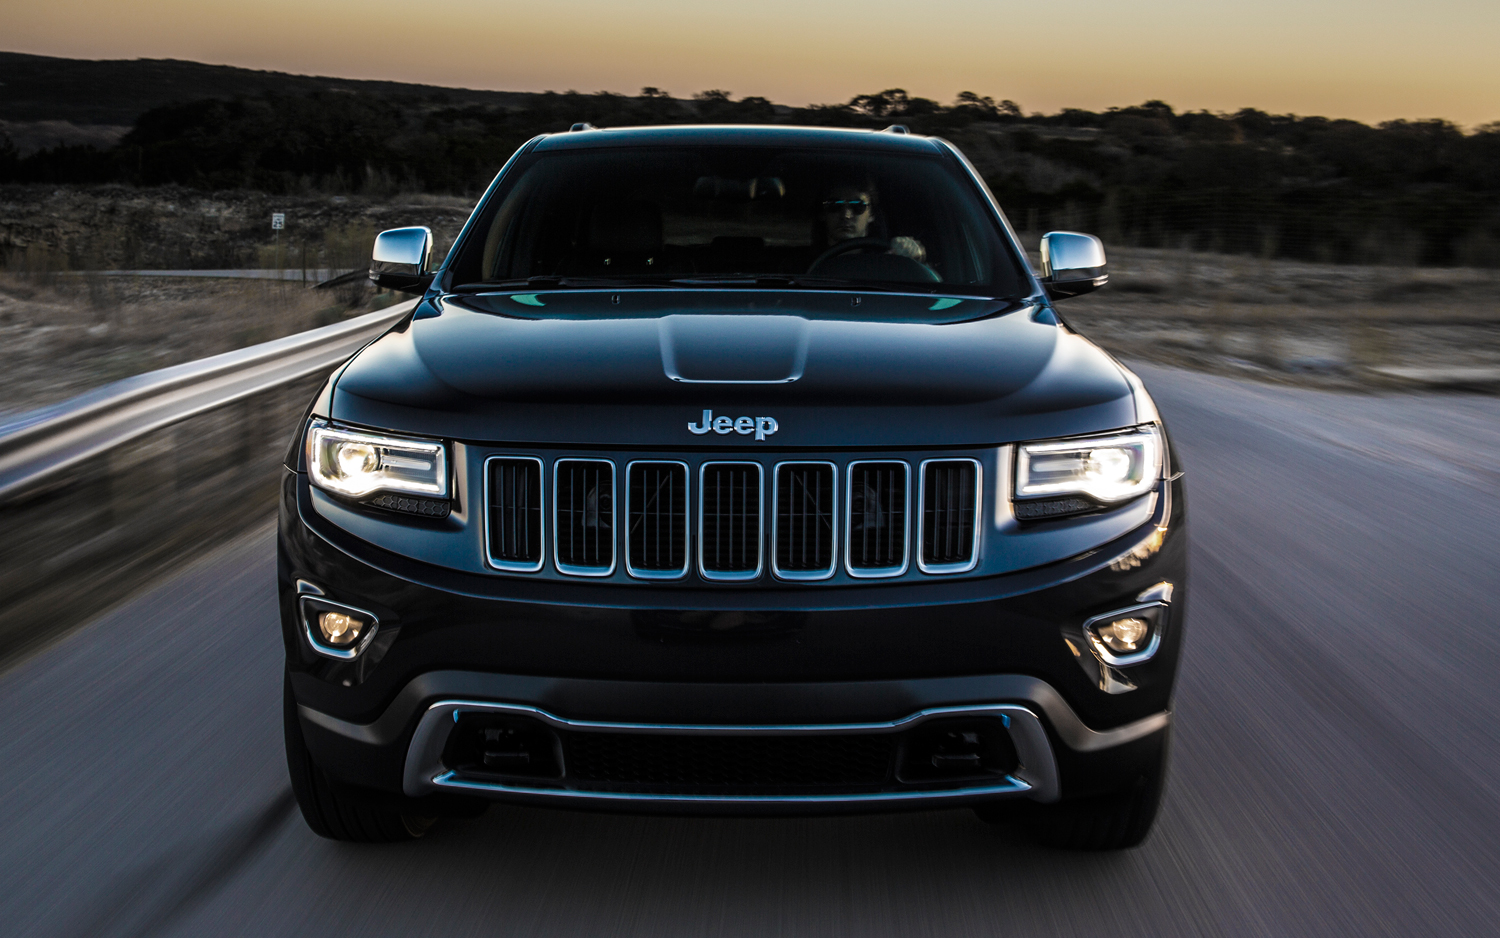 2014-Jeep-Grand-Cherokee - Palmen Motors